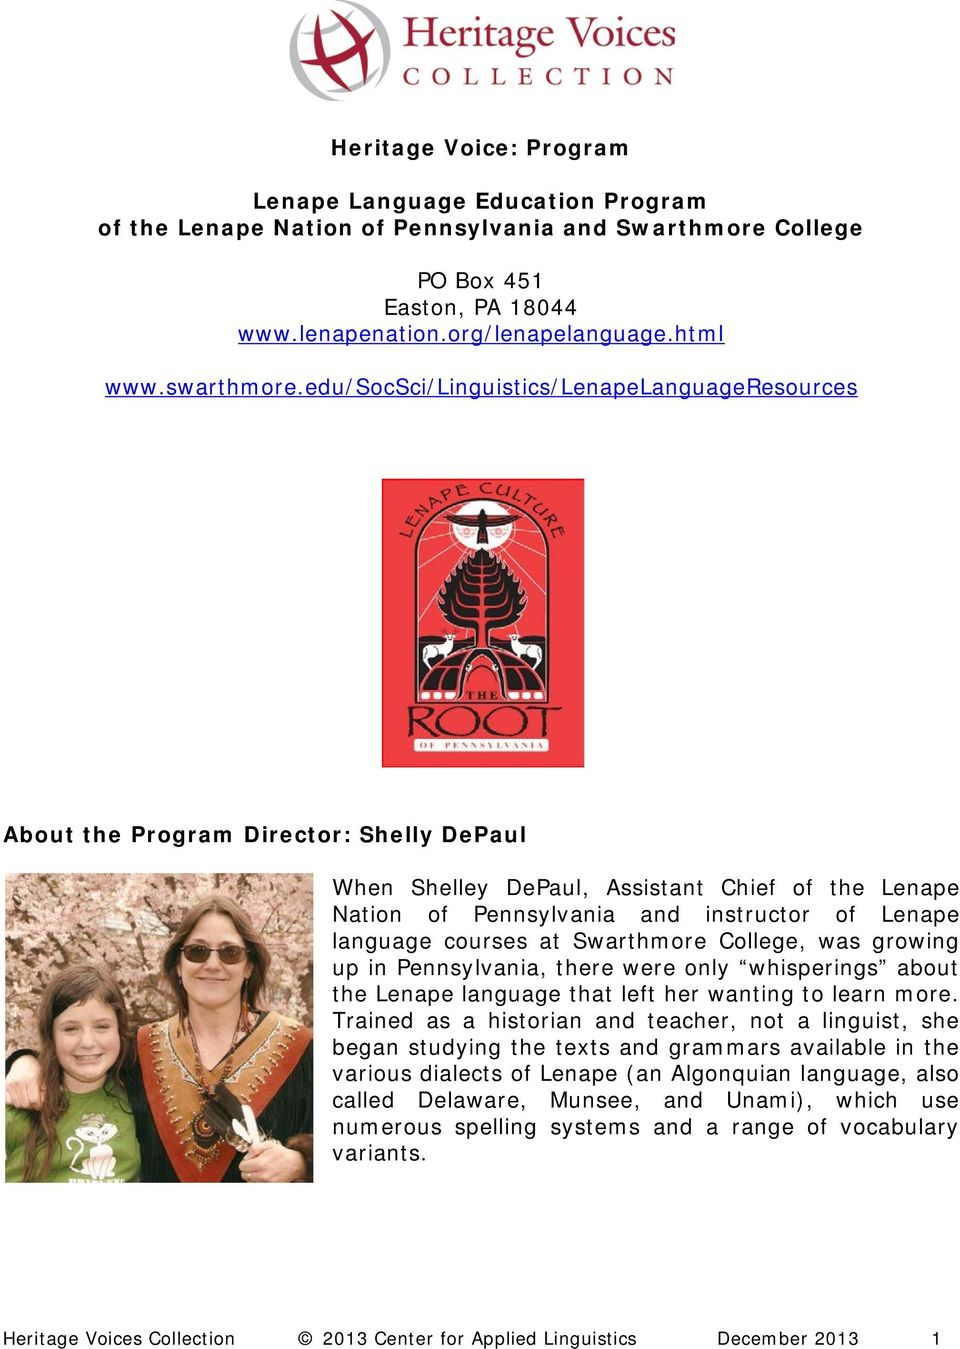 edu/socsci/linguistics/lenapelanguageresources About the Program Director: Shelly DePaul When Shelley DePaul, Assistant Chief of the Lenape Nation of Pennsylvania and instructor of Lenape language